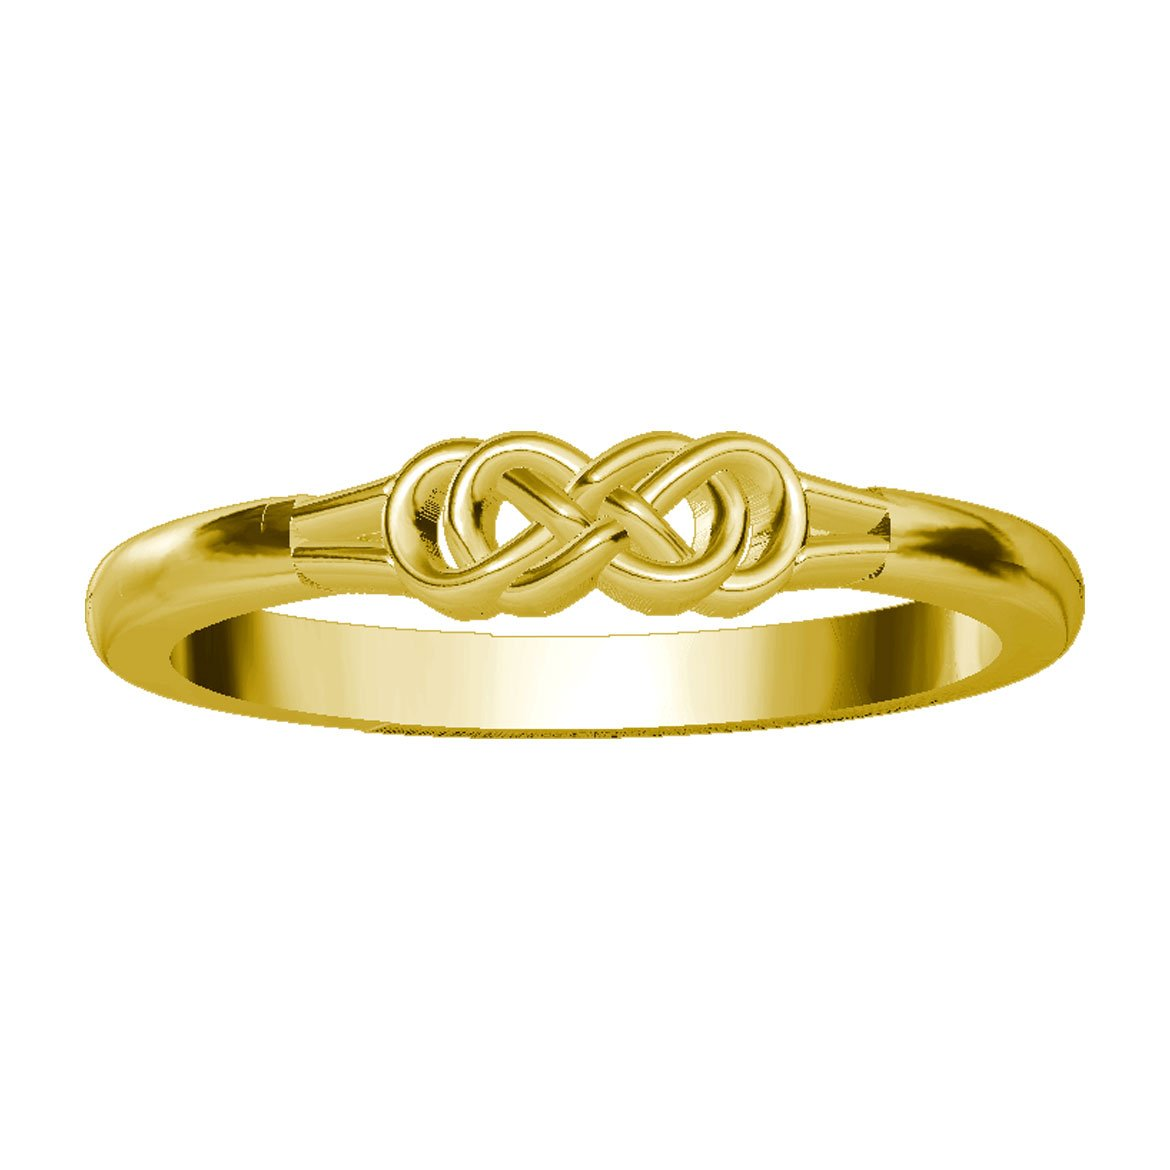 Infinity Ring Endless Love in 14K Yellow Gold size 4.5